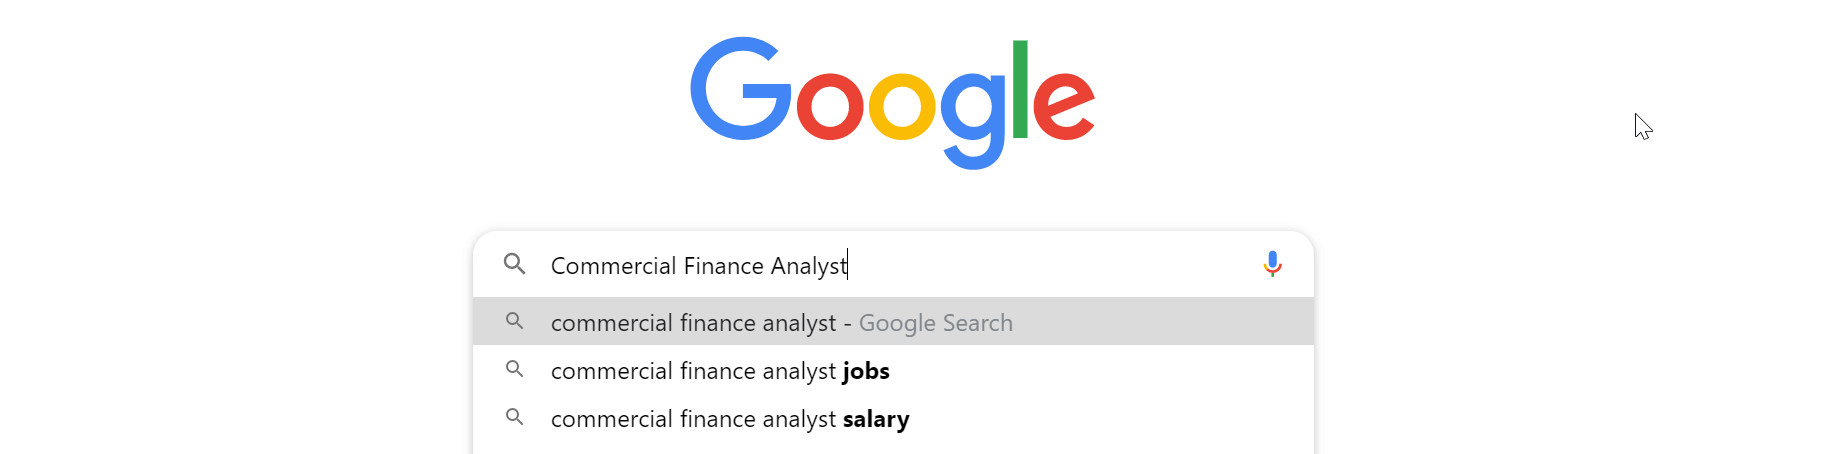 Seo considerations writing job description